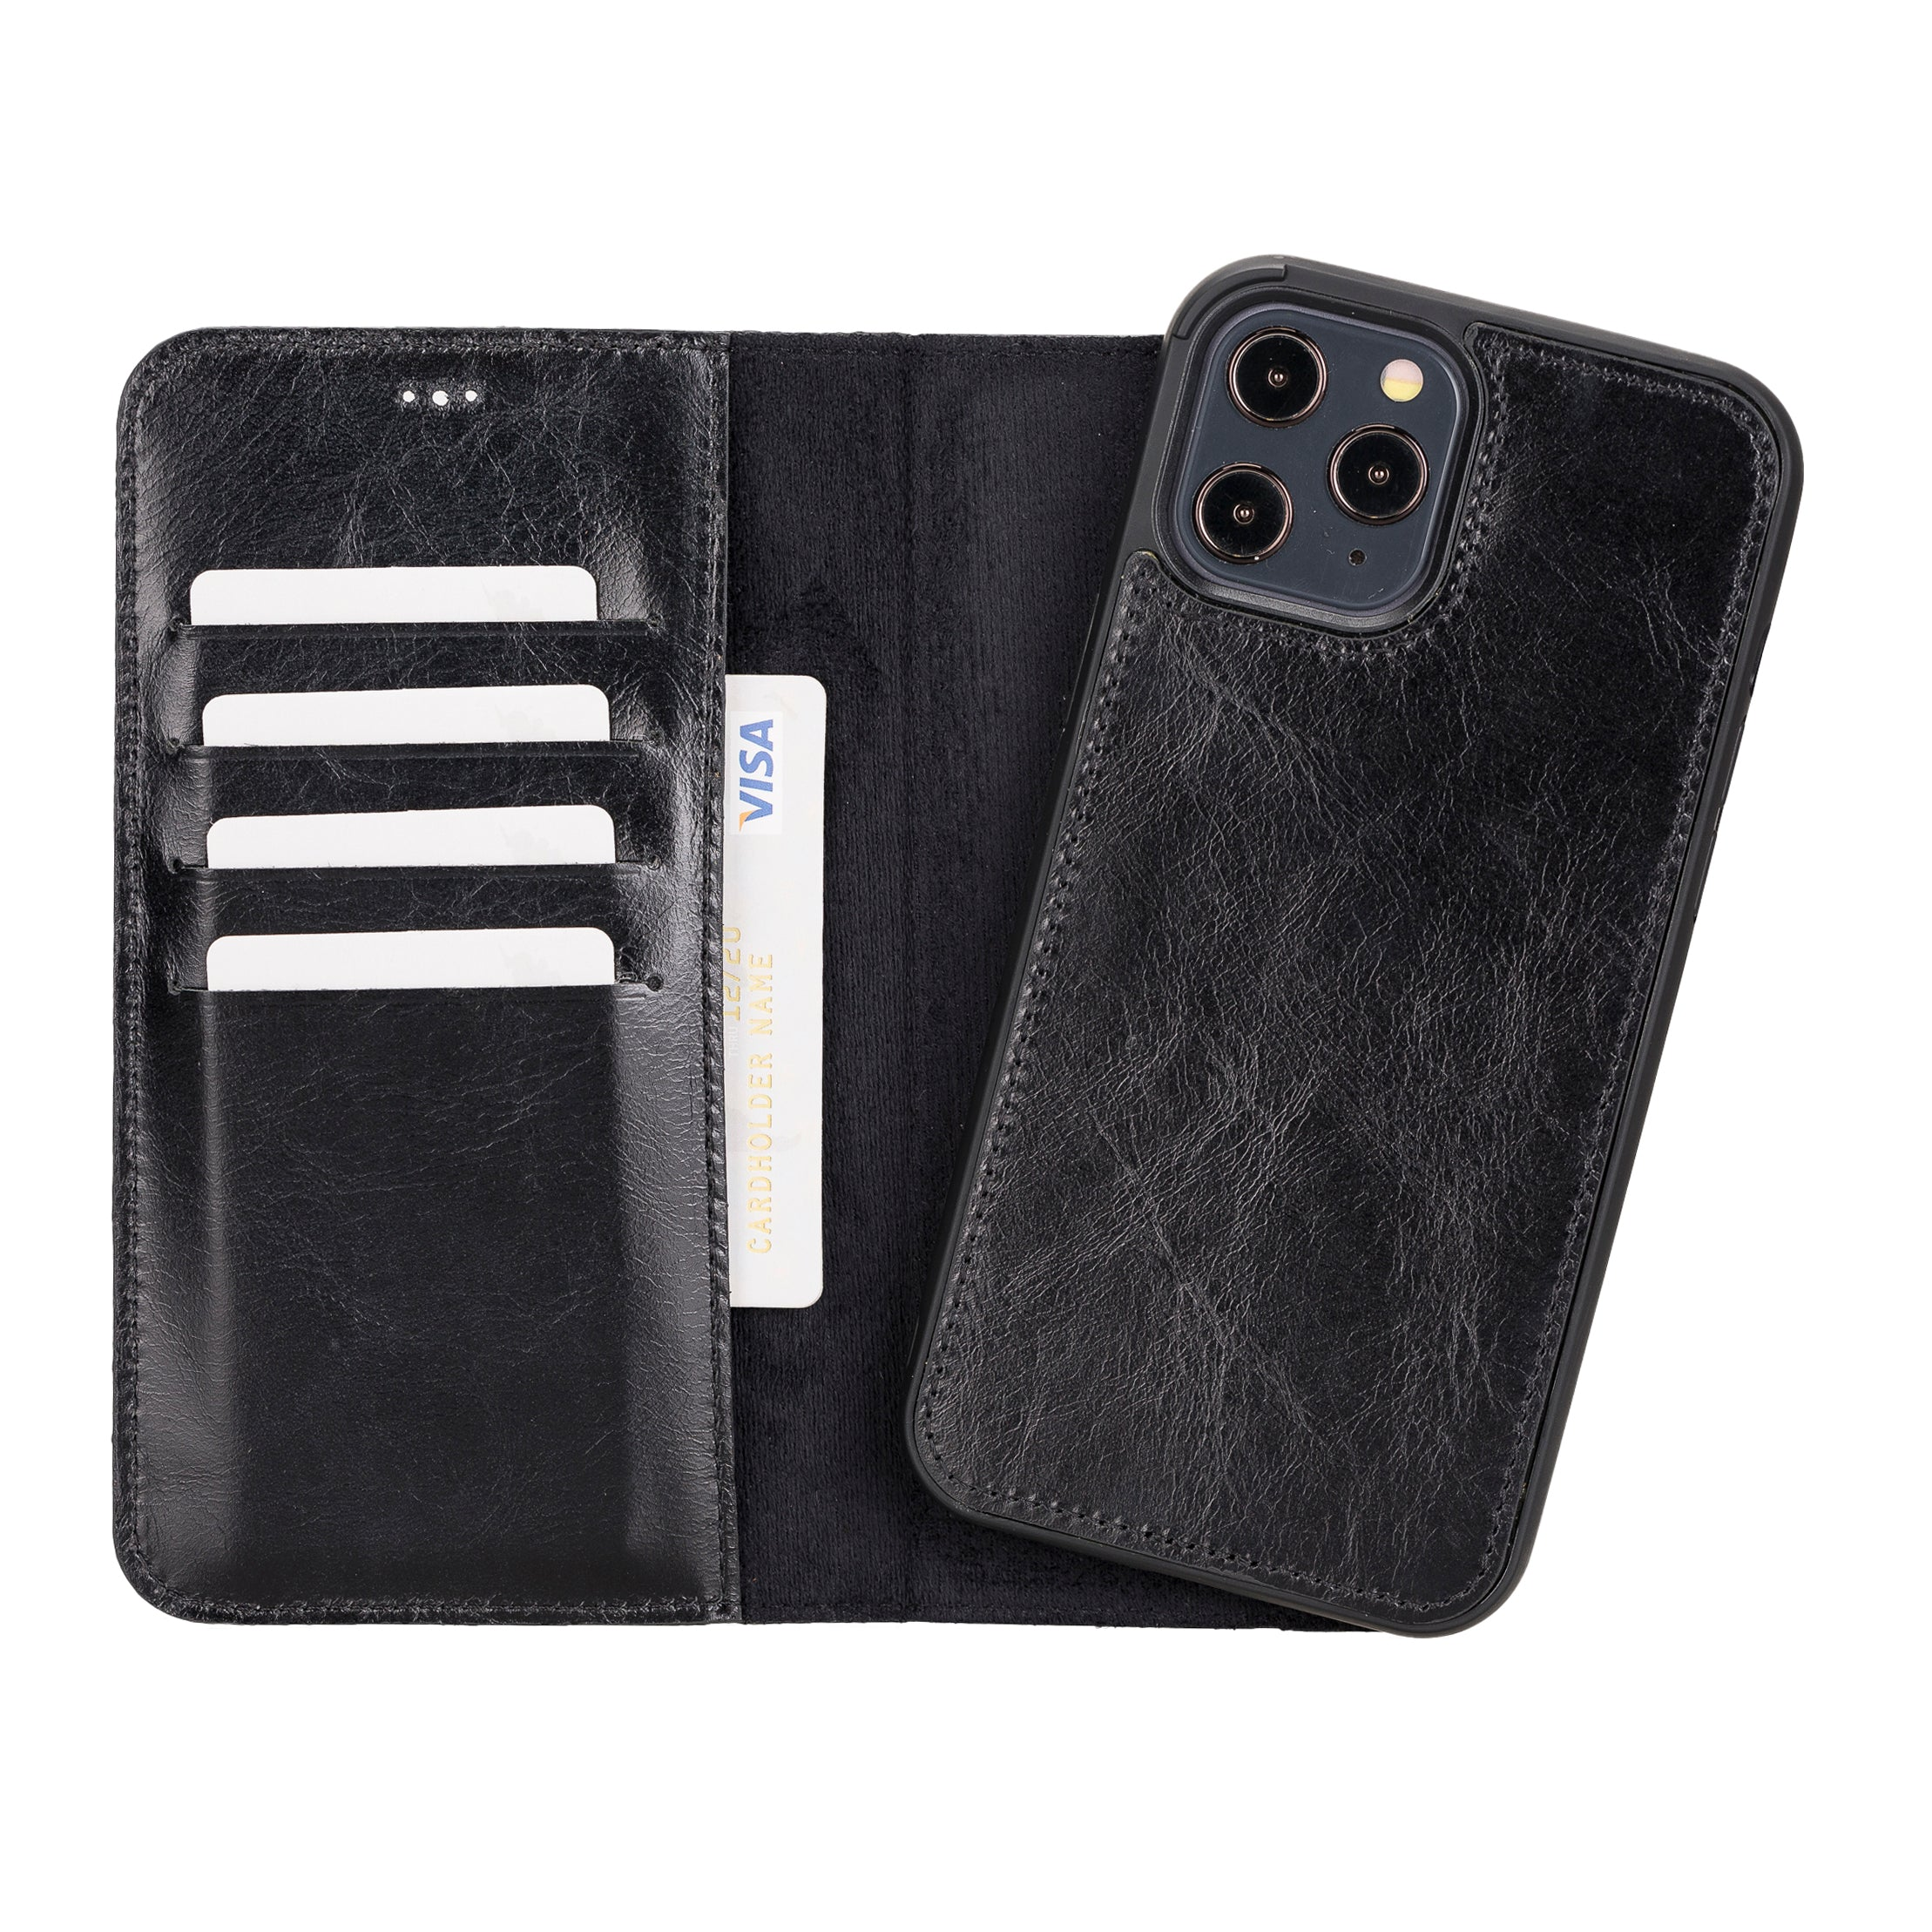 "Magic Magnetic Detachable Leather Wallet Case for iPhone 12 Pro Max (6.7"") - BLACK - saracleather"